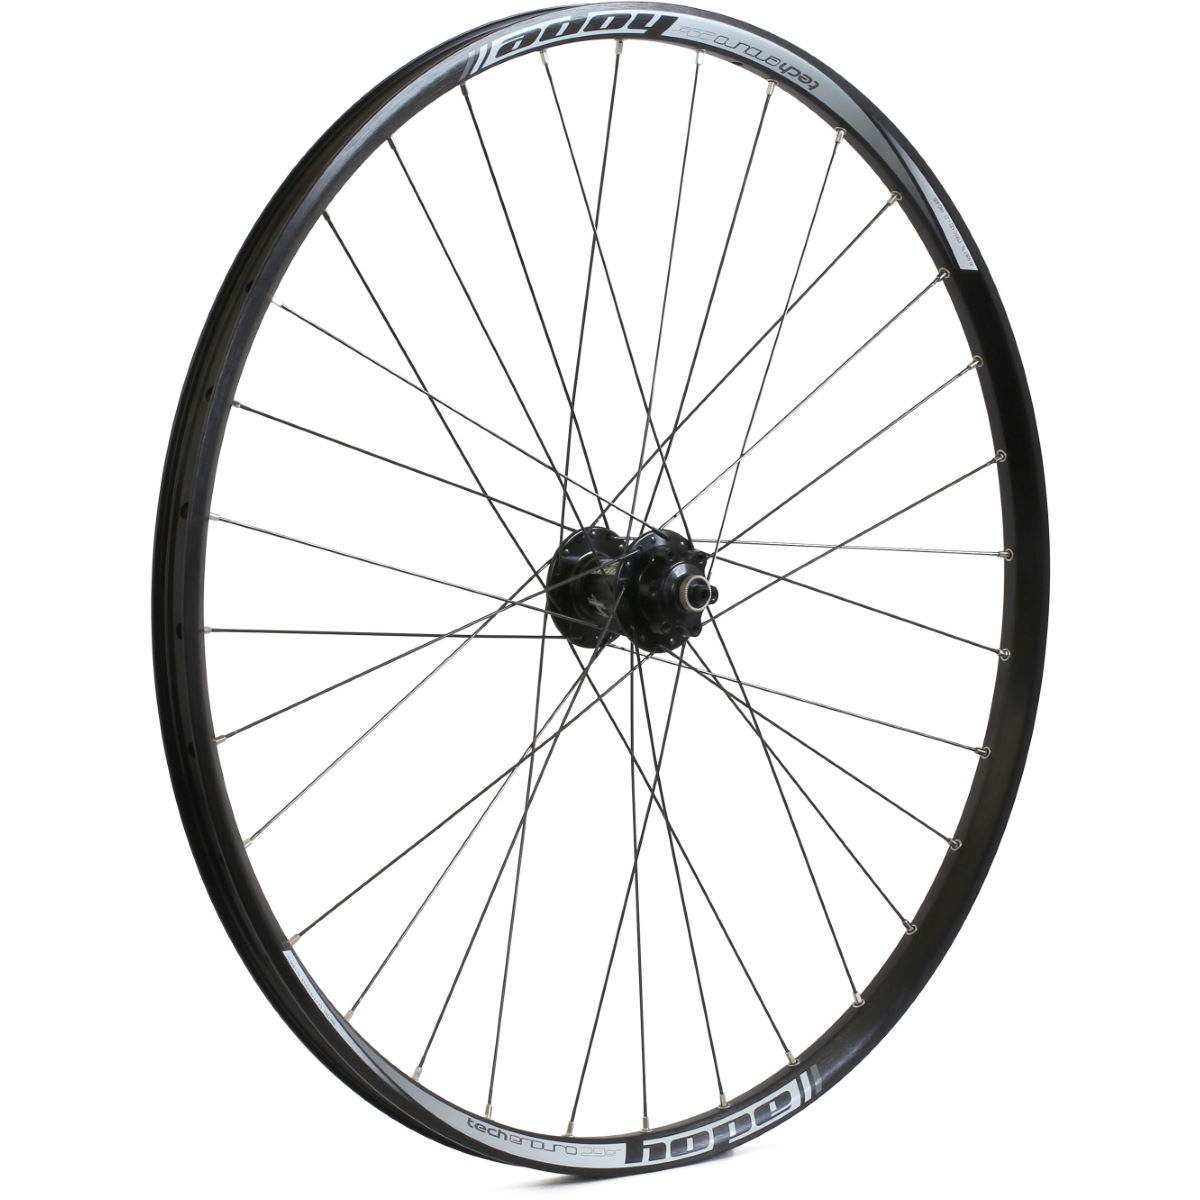 Roue avant VTT Hope Pro 4 Tech Enduro - 29'', 100mm Axle Noir